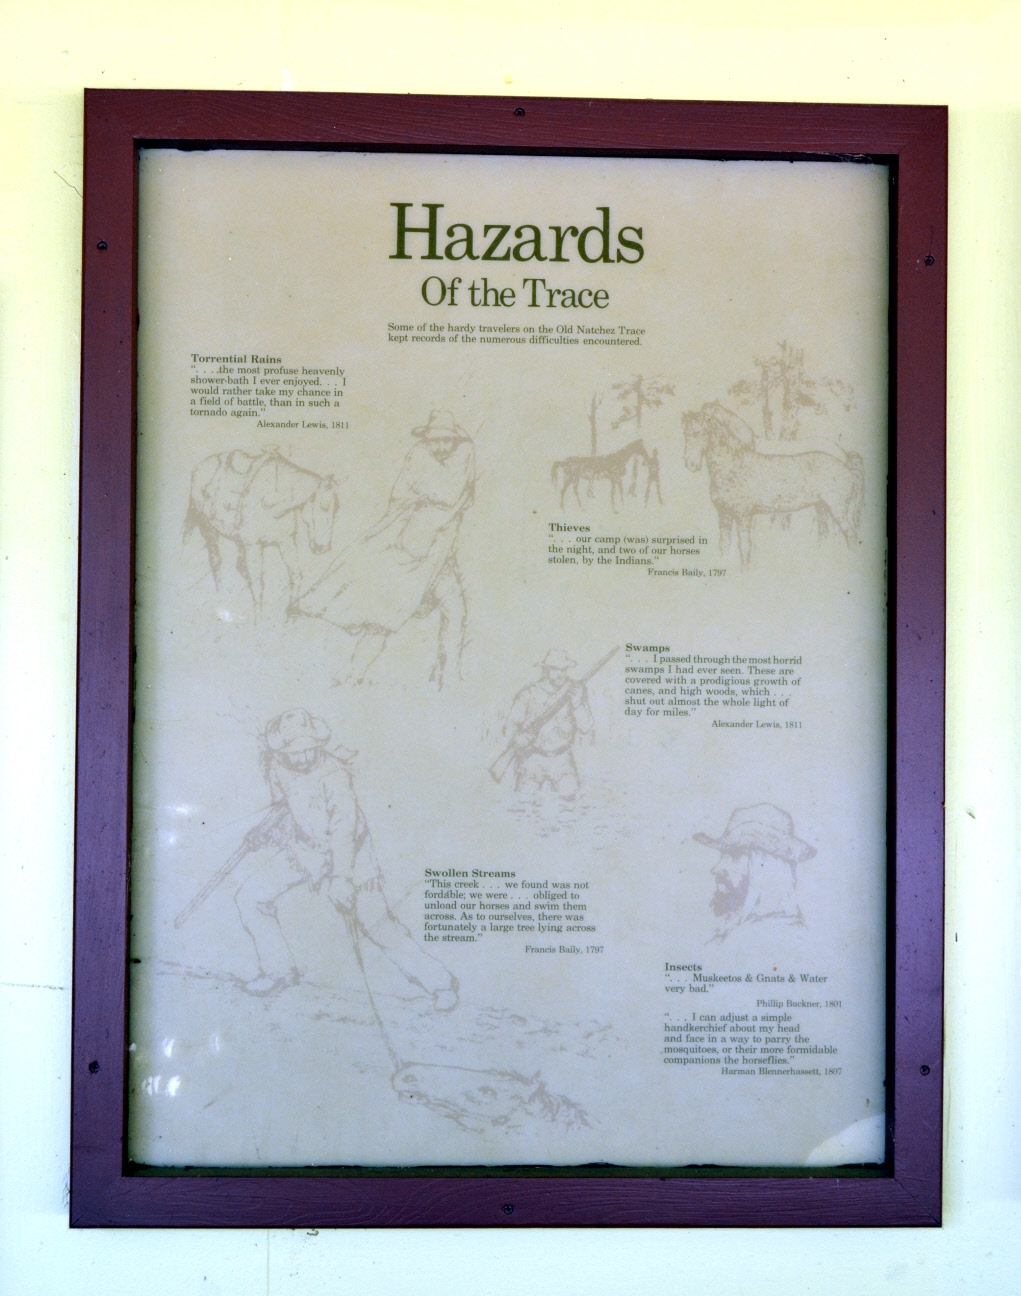 Hazards of the Trace Marker